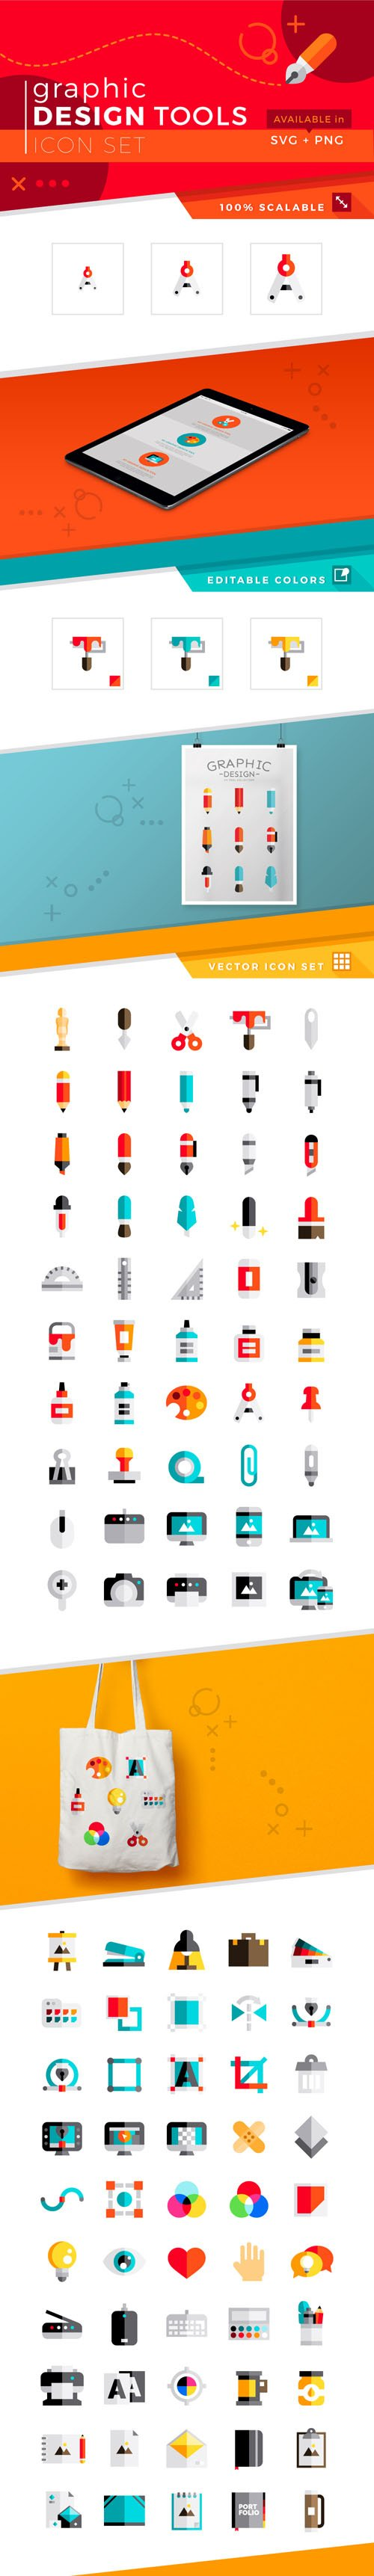 100 Graphic Design Tools Icons (SVG/PNG)